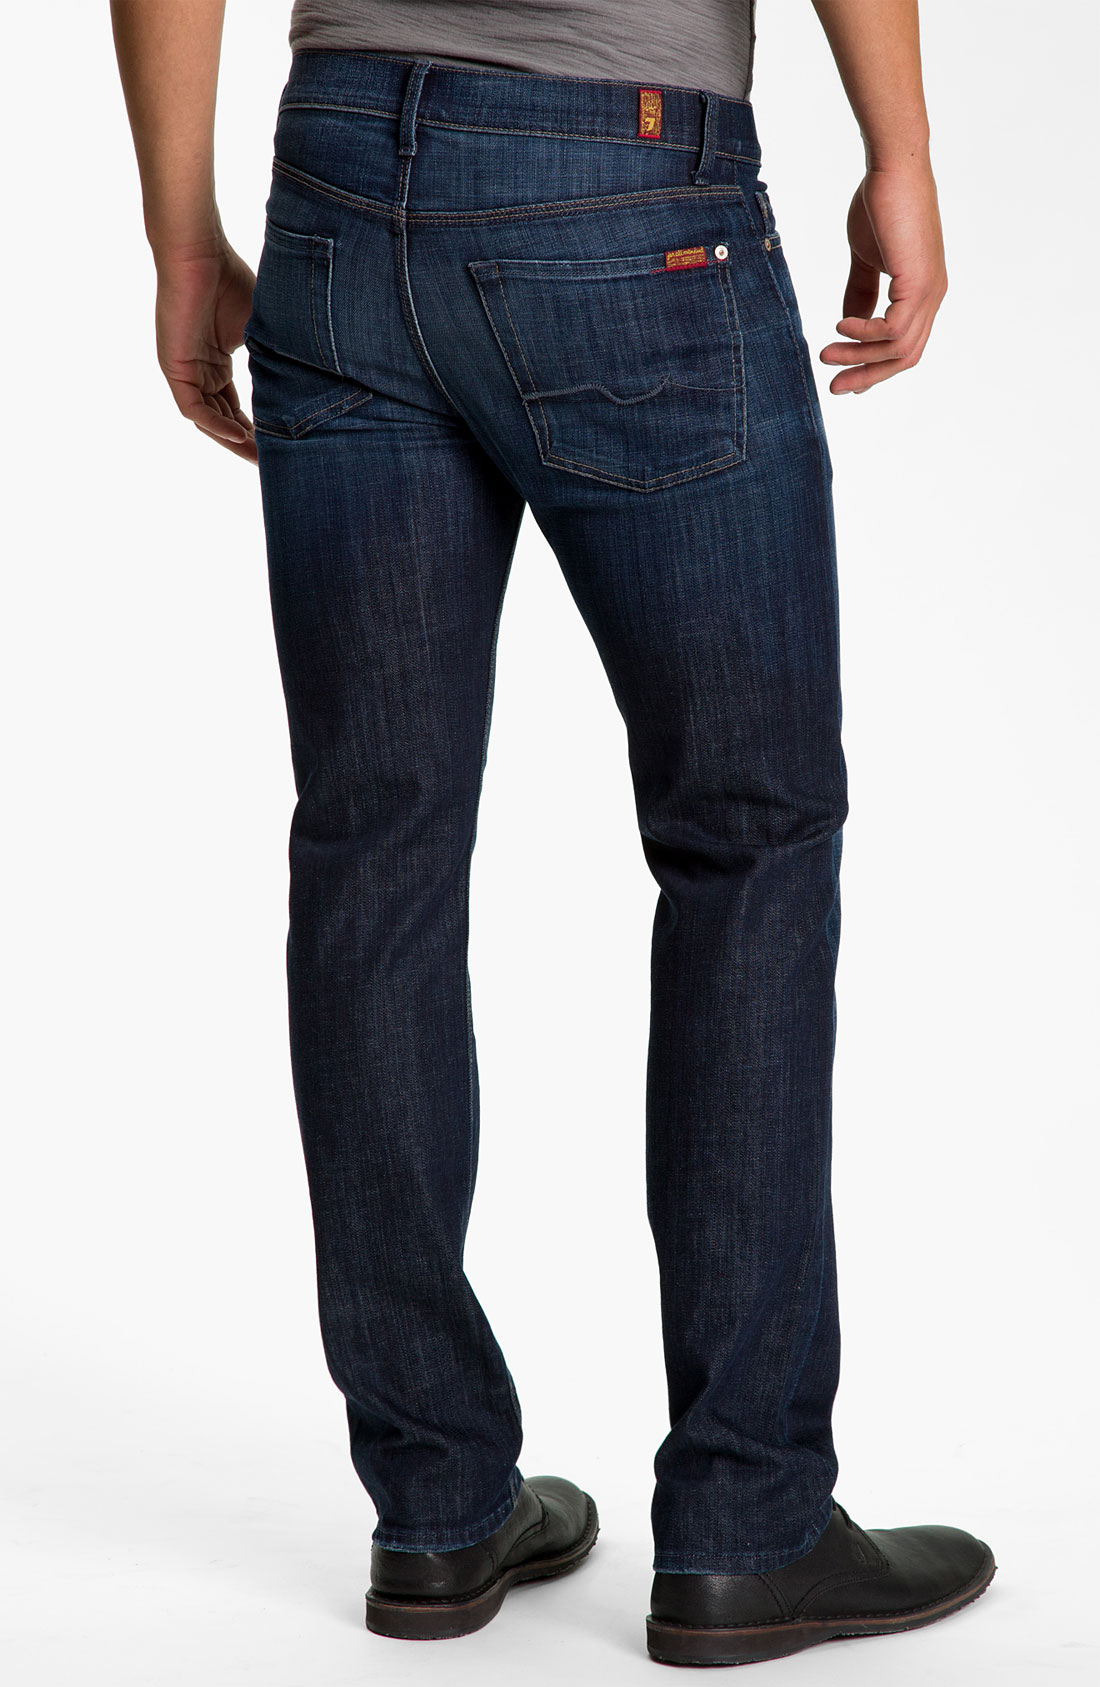 Rich, dark denim structures five-pocket jeans with a vintage look and a clean, tailored silhouette. Graduate jeans fit like the Protégé on top and the Matchbox from knee to ankle, pairing a relaxed waist with a slim tailored leg.